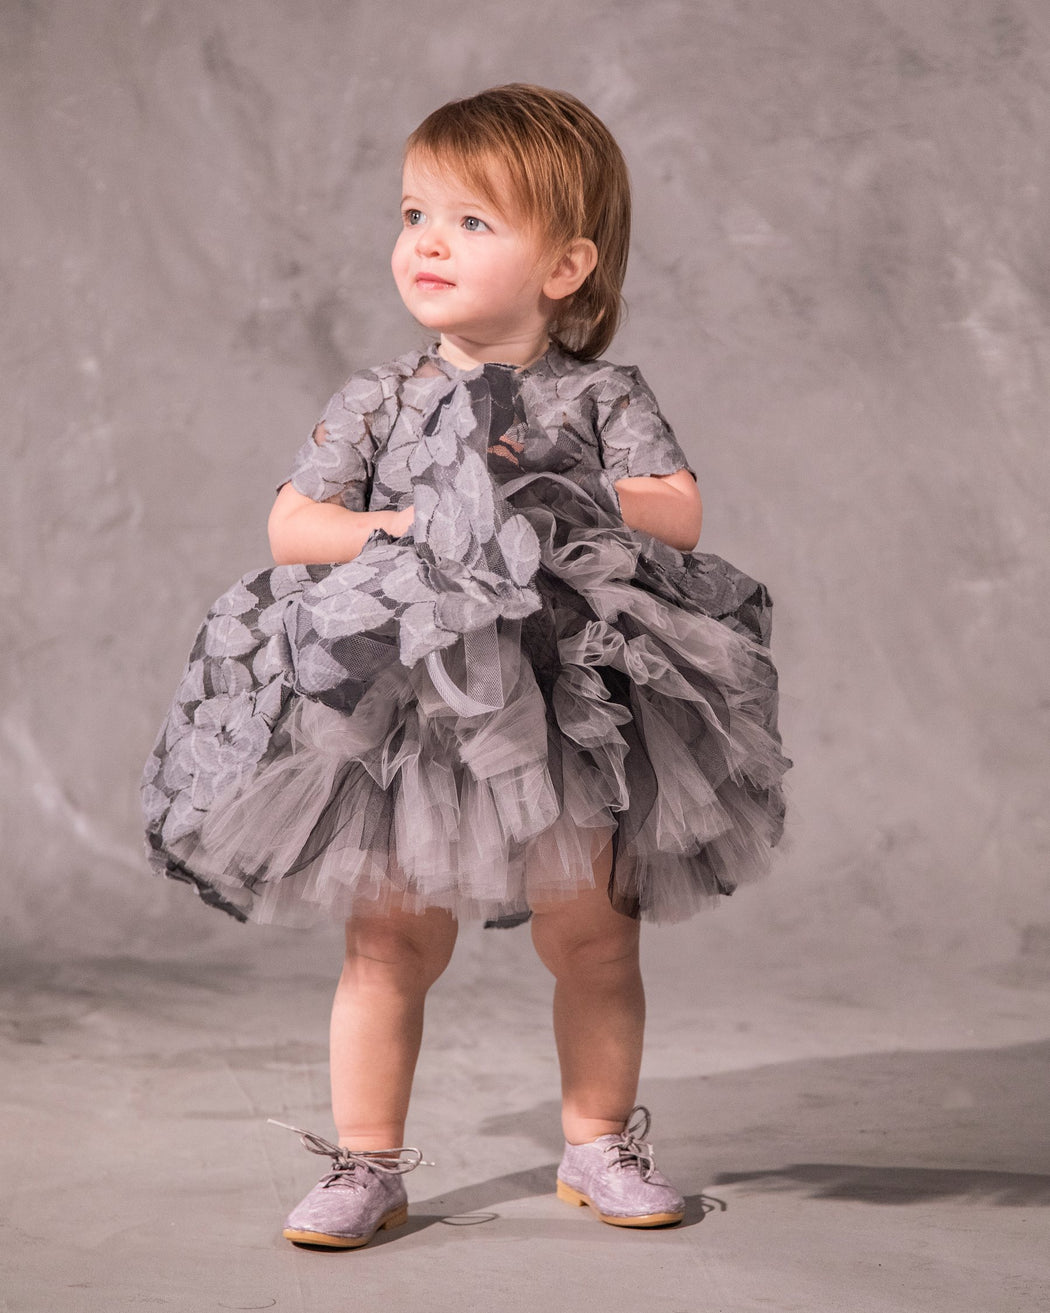 The Baby Annabelle-Baby Dress-Doloris Petunia